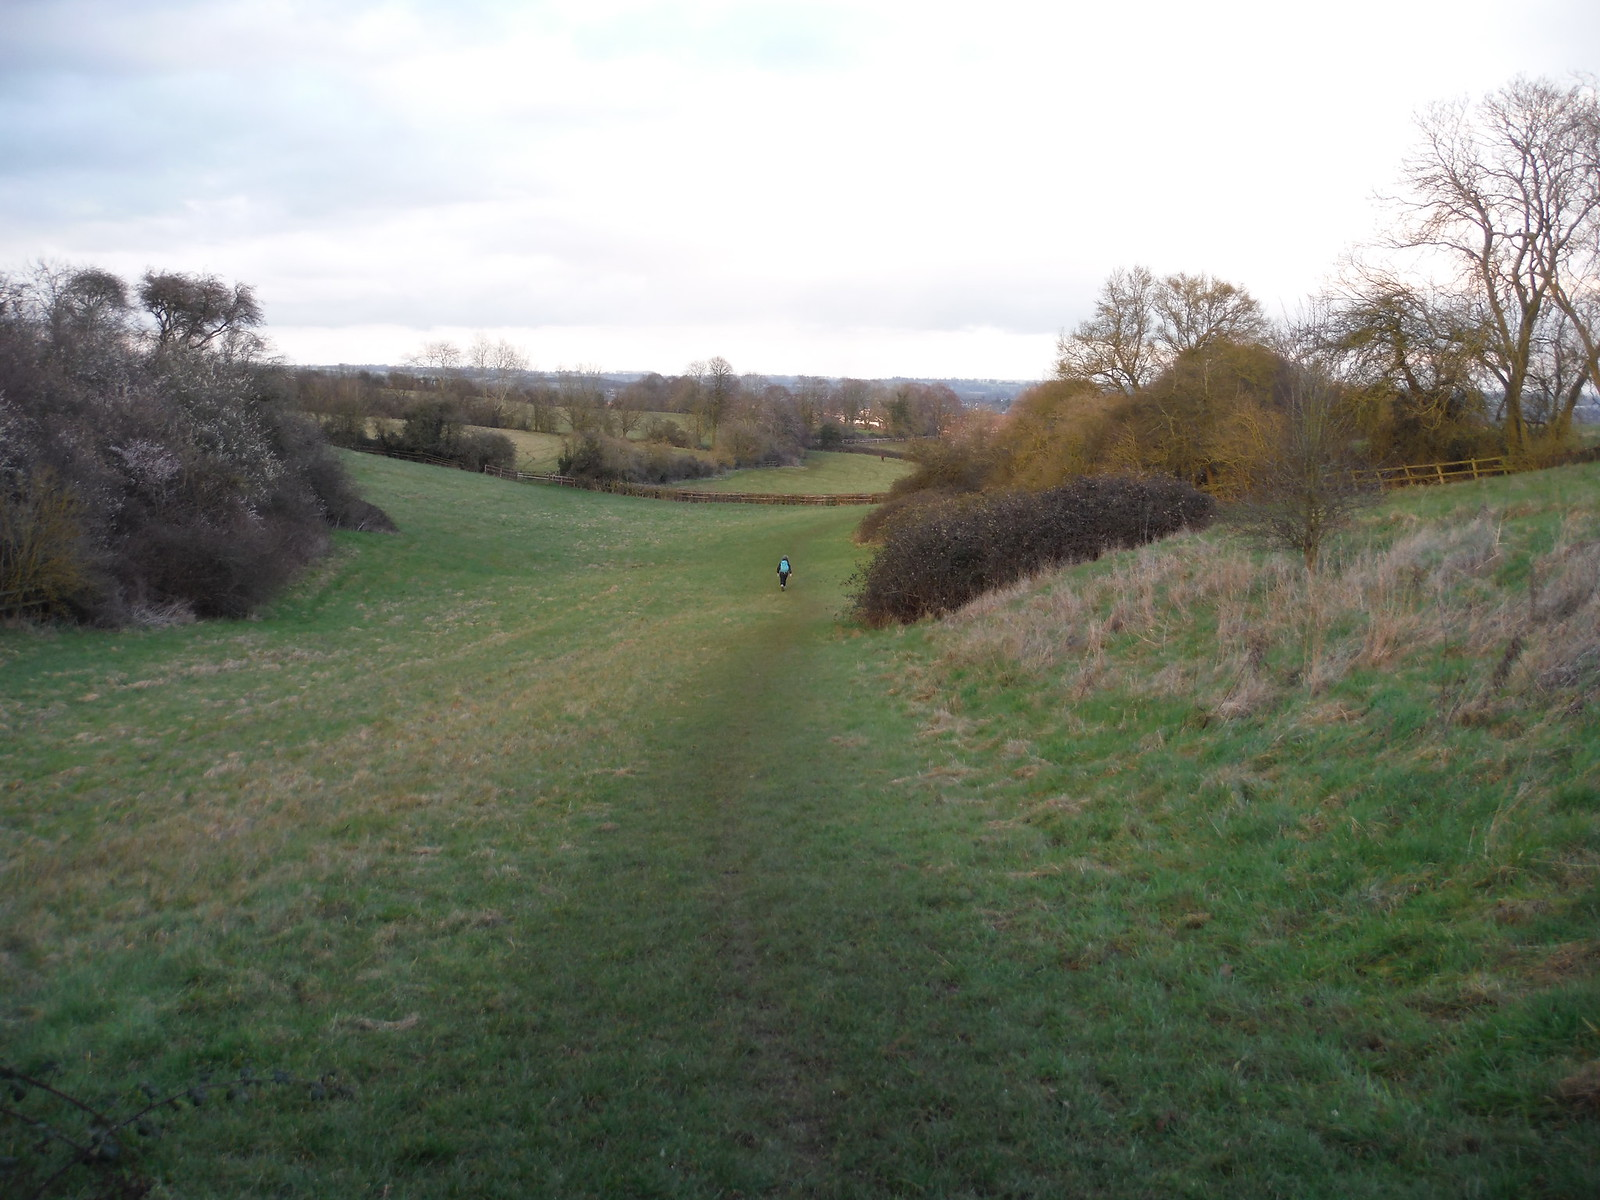 One Girl's ahead, on descent to Linslade SWC Walk Cheddington to Leighton Buzzard